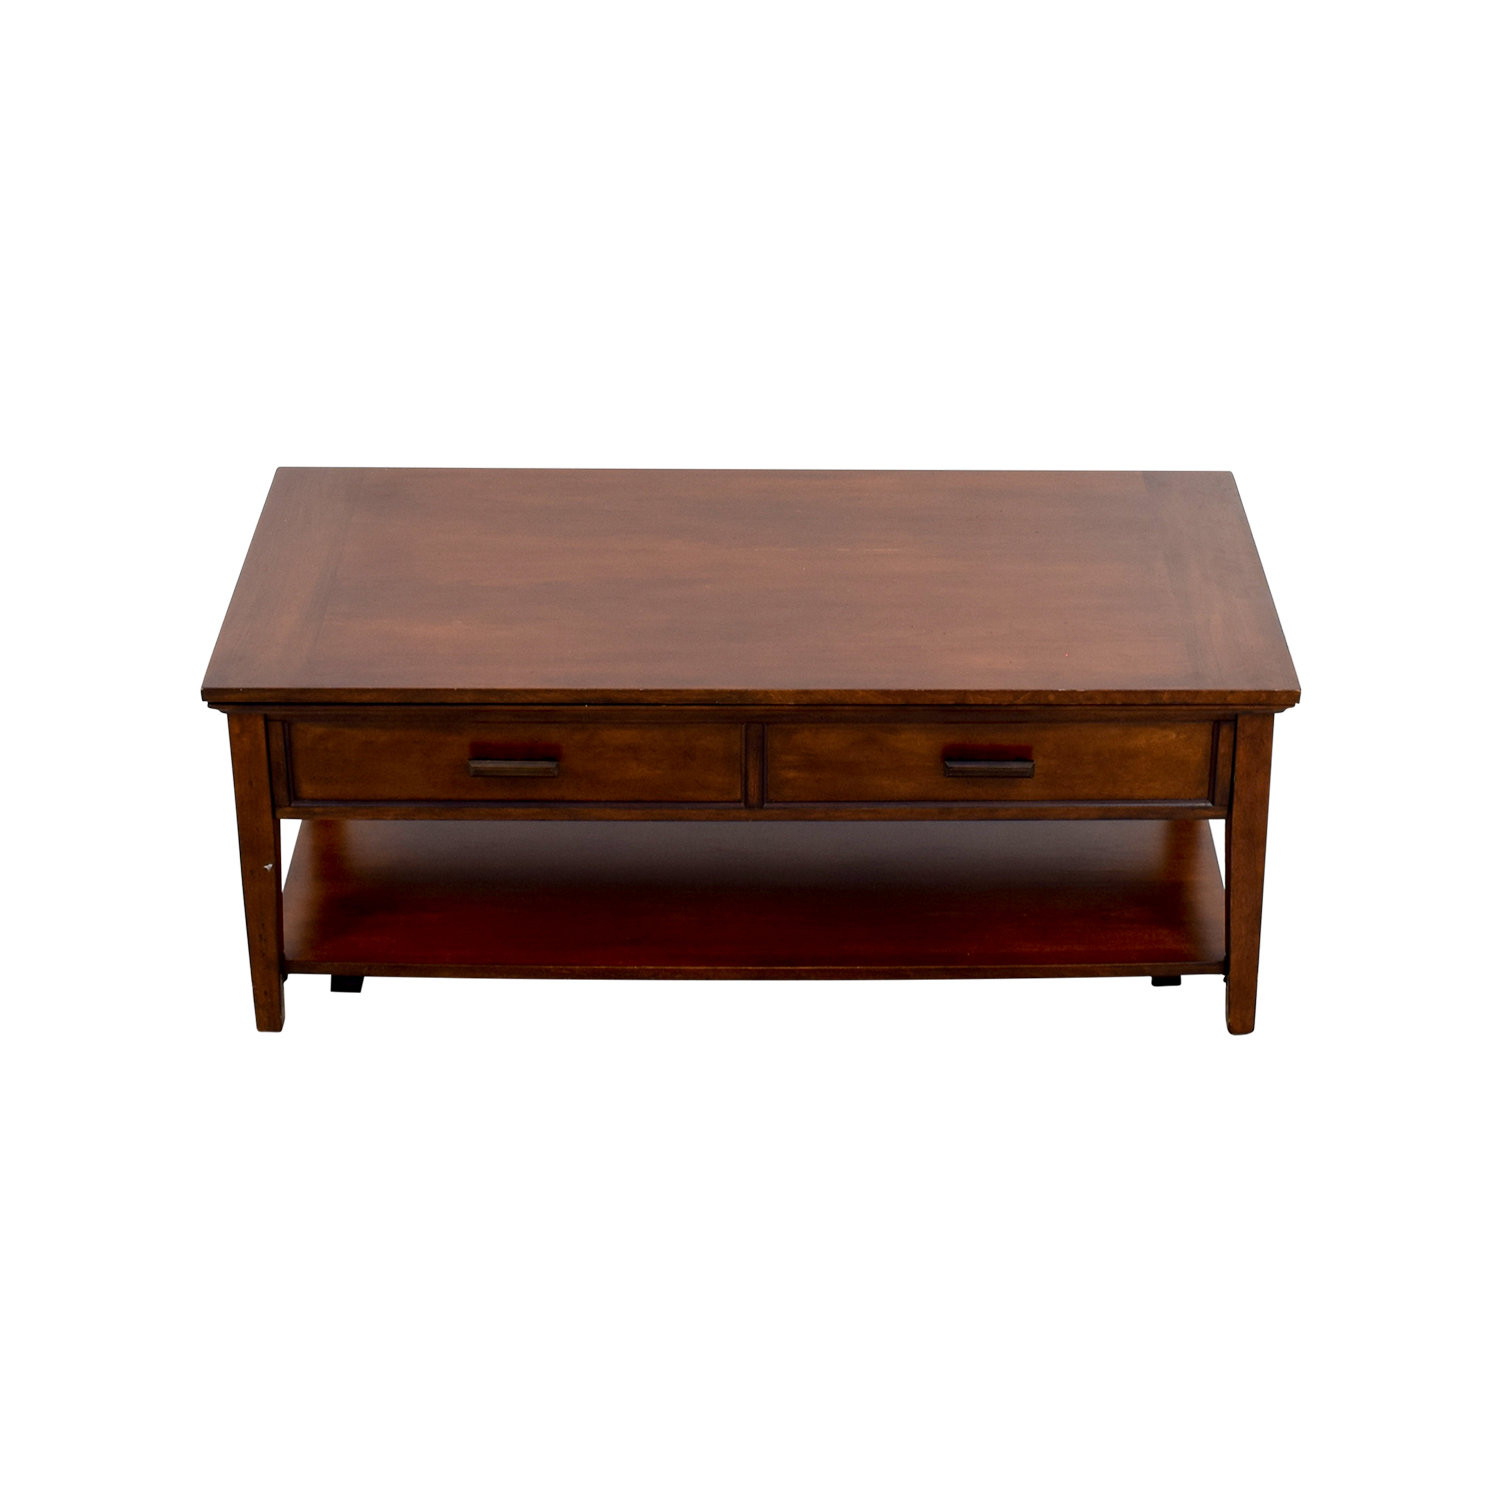 80% OFF   Wooden Hideaway Coffee Table / Tables